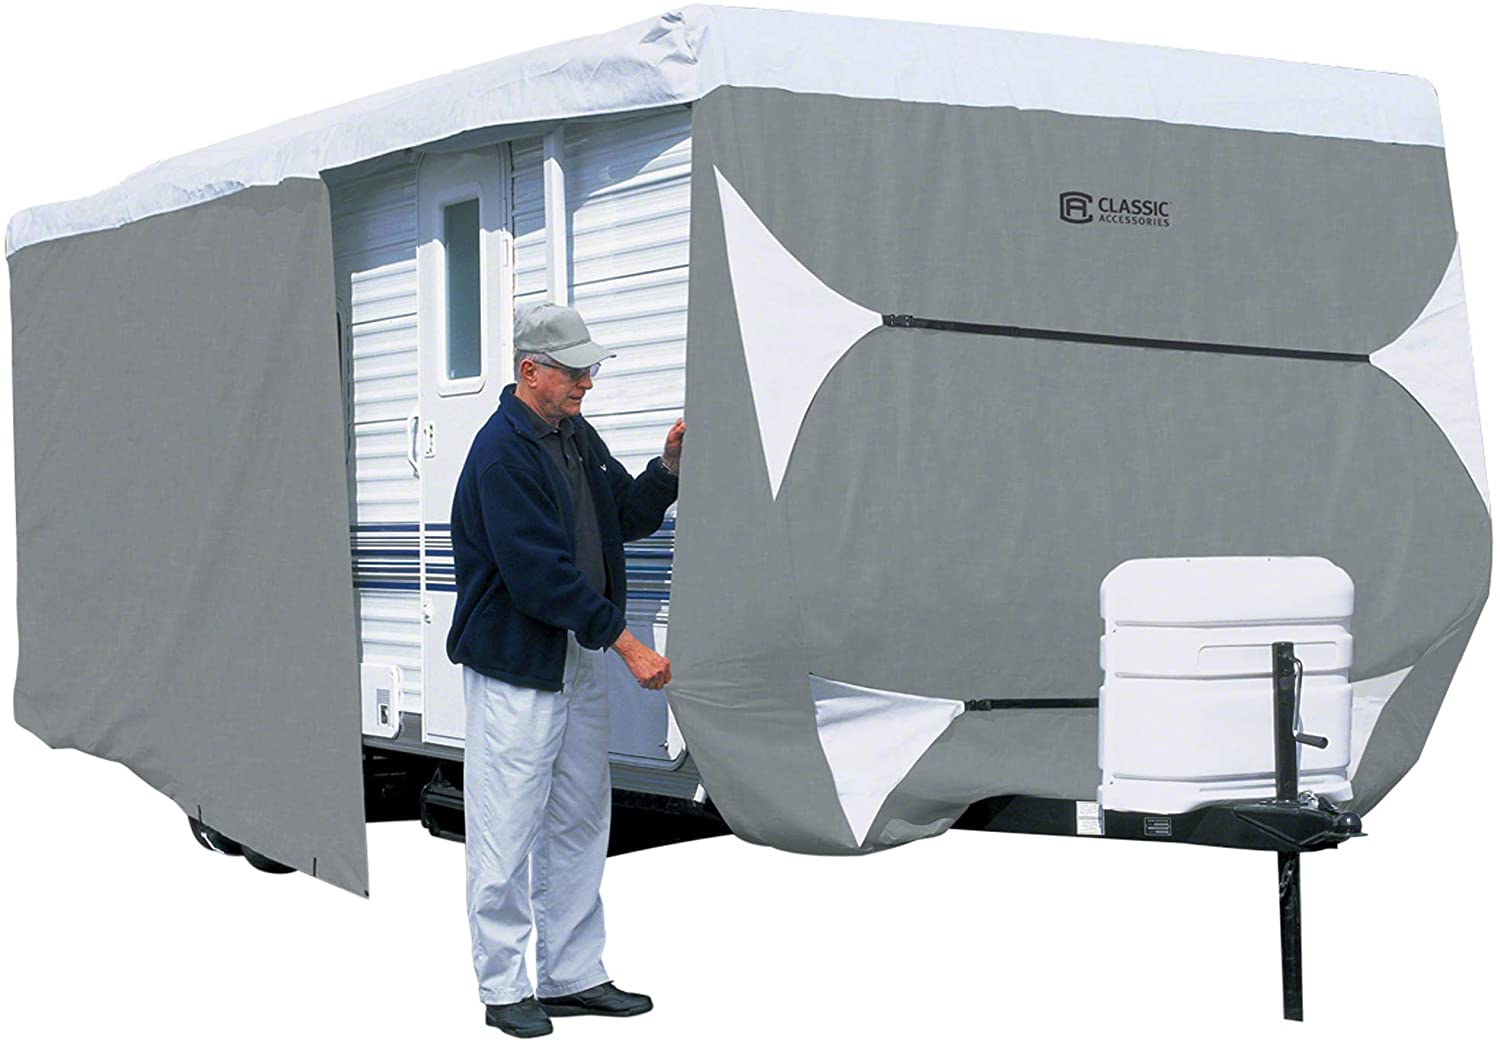 B0009HYQ54 Classic Accessories OverDrive PolyPro 3 Deluxe Travel Trailer Cover, Fits 20' - 22' 712UBJqWWVL